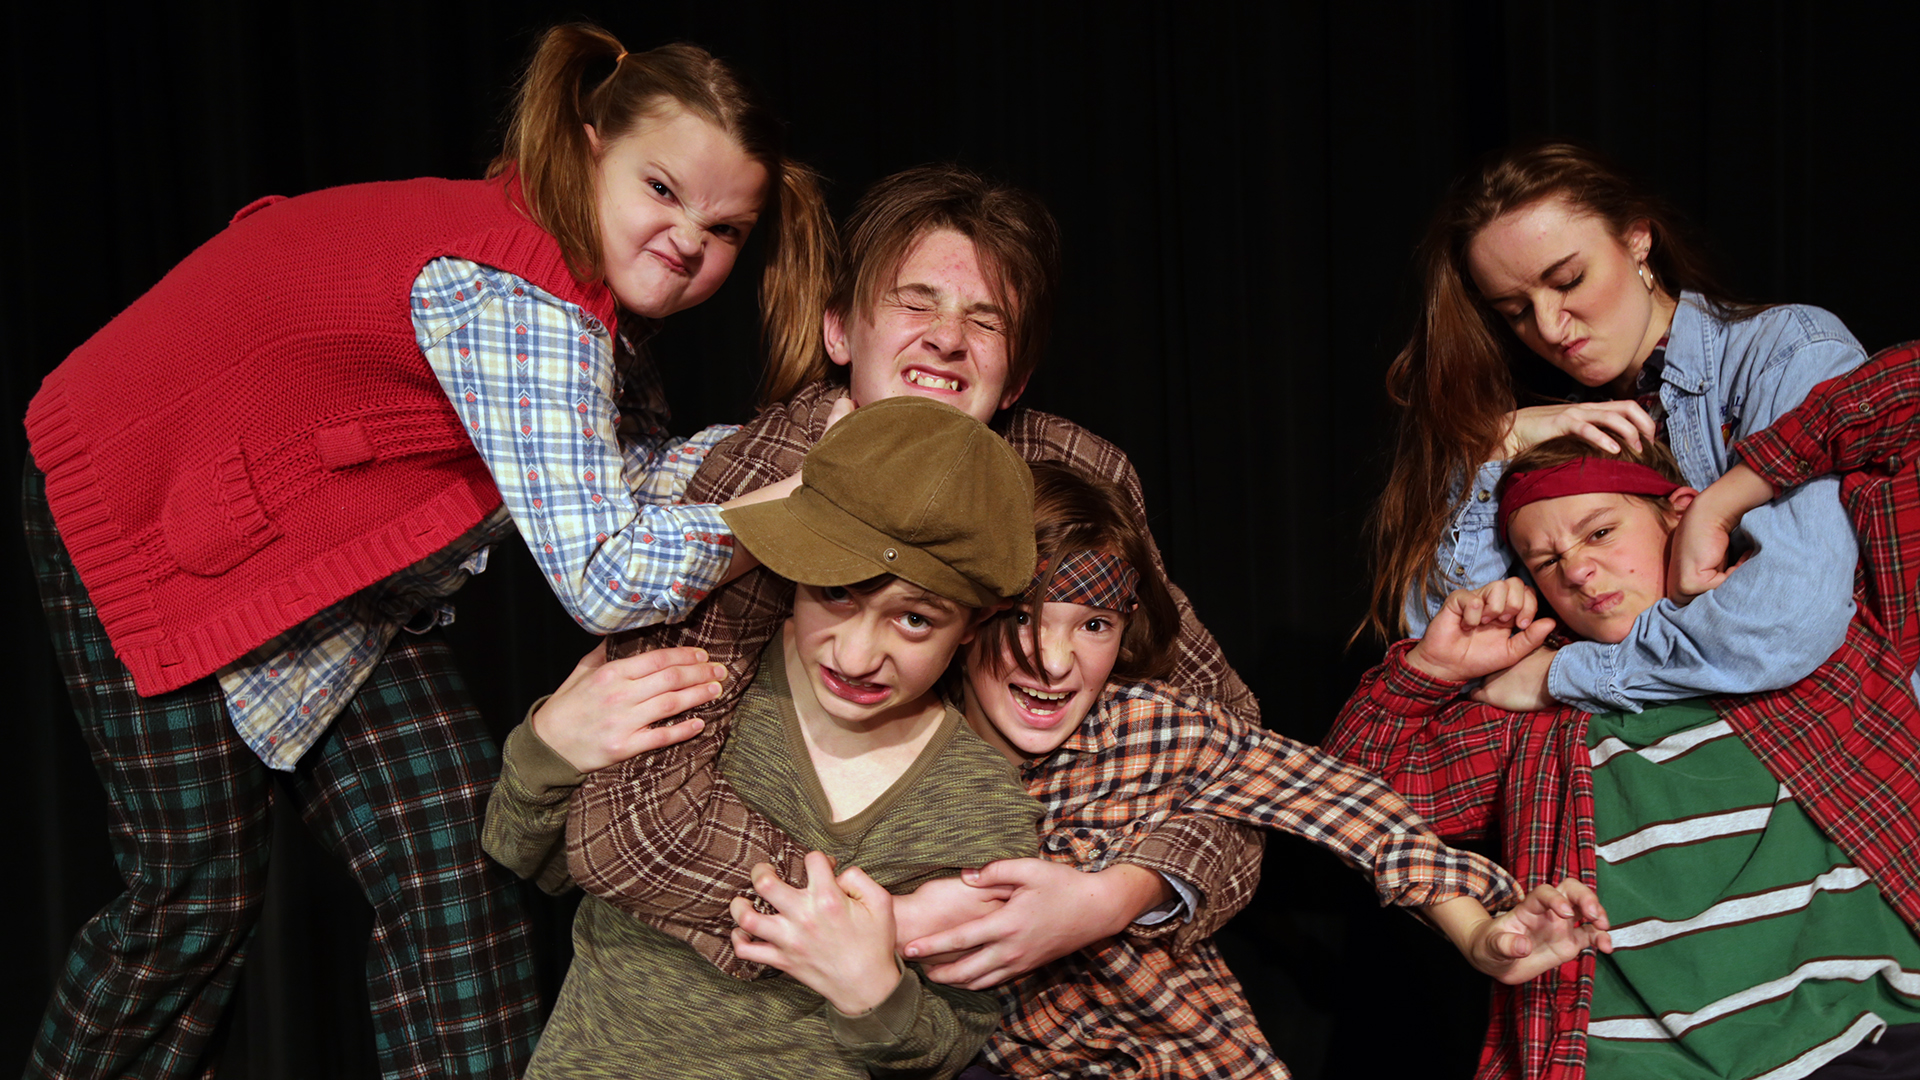 Holy terrors: Nightmare children learn meaning of holiday peace, joy in 'Best Christmas Pageant Ever'